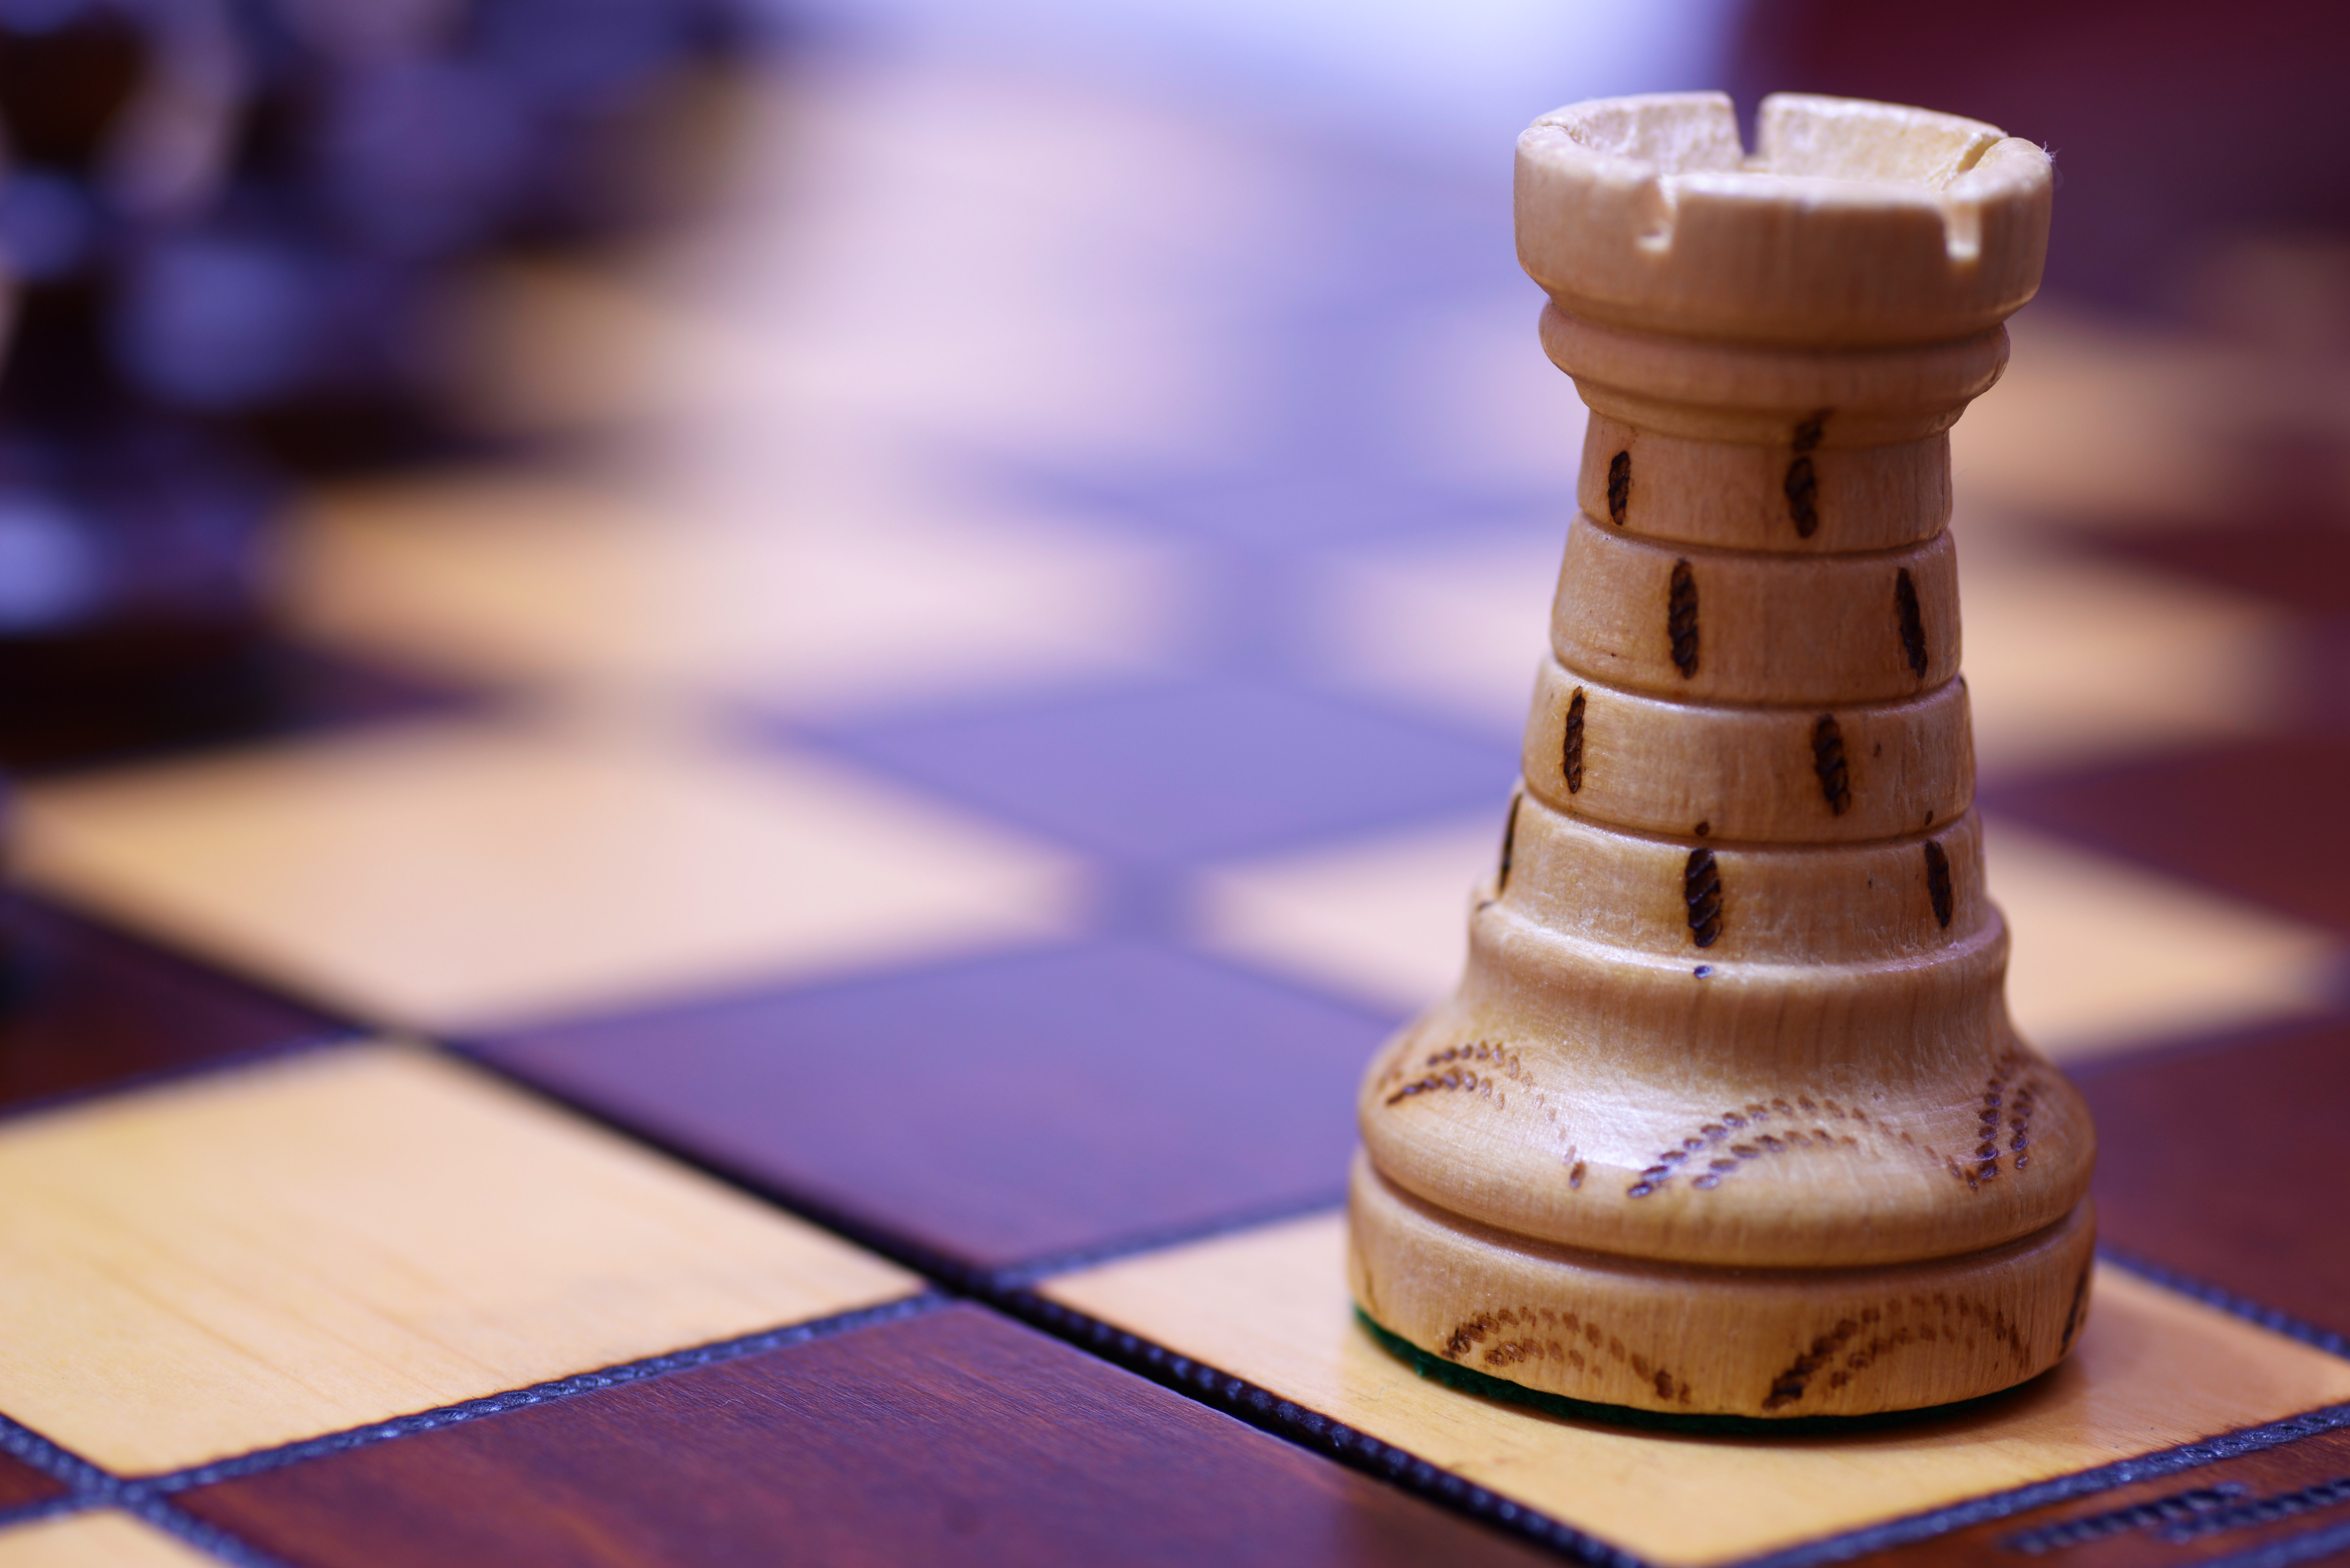 White Chess Piece on Top of Chess Board  Free Stock Photo